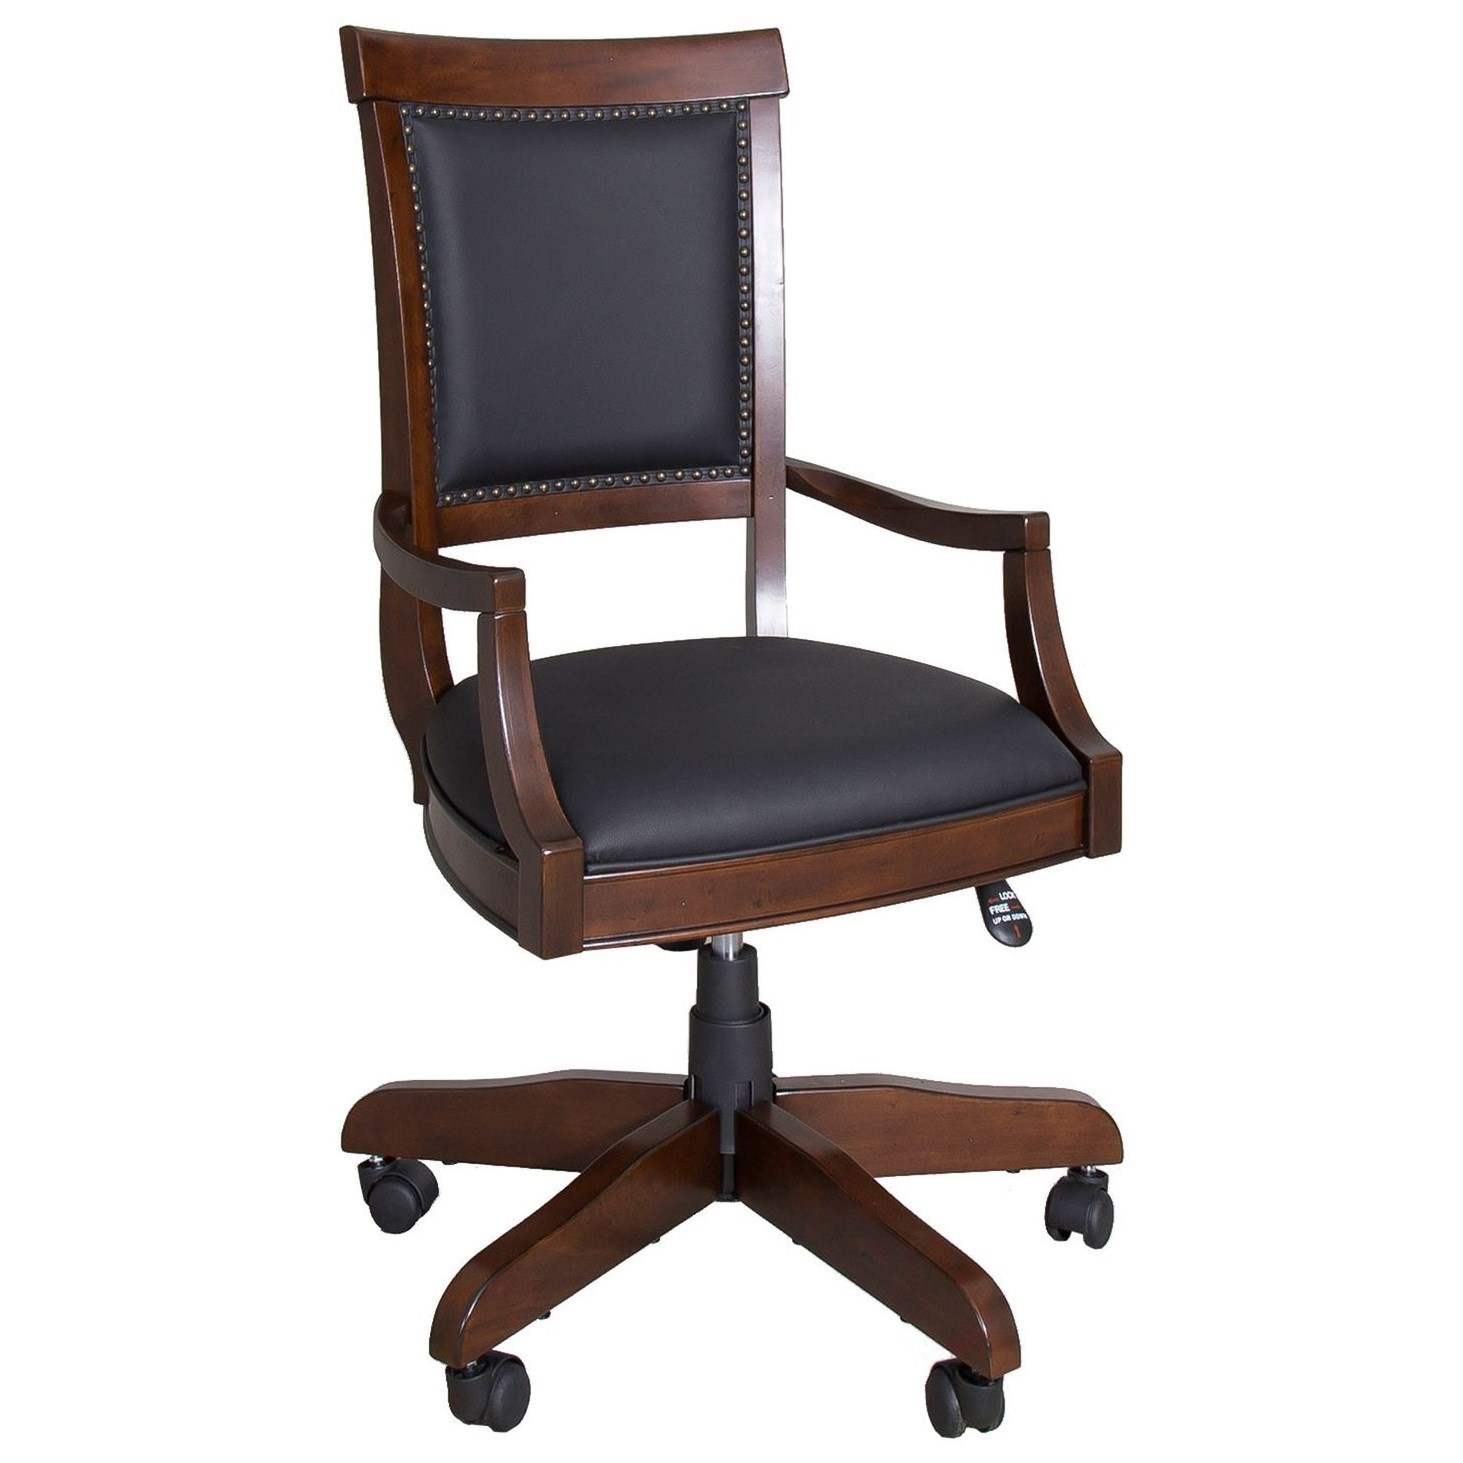 Traditional Upholstered Executive Desk Chair